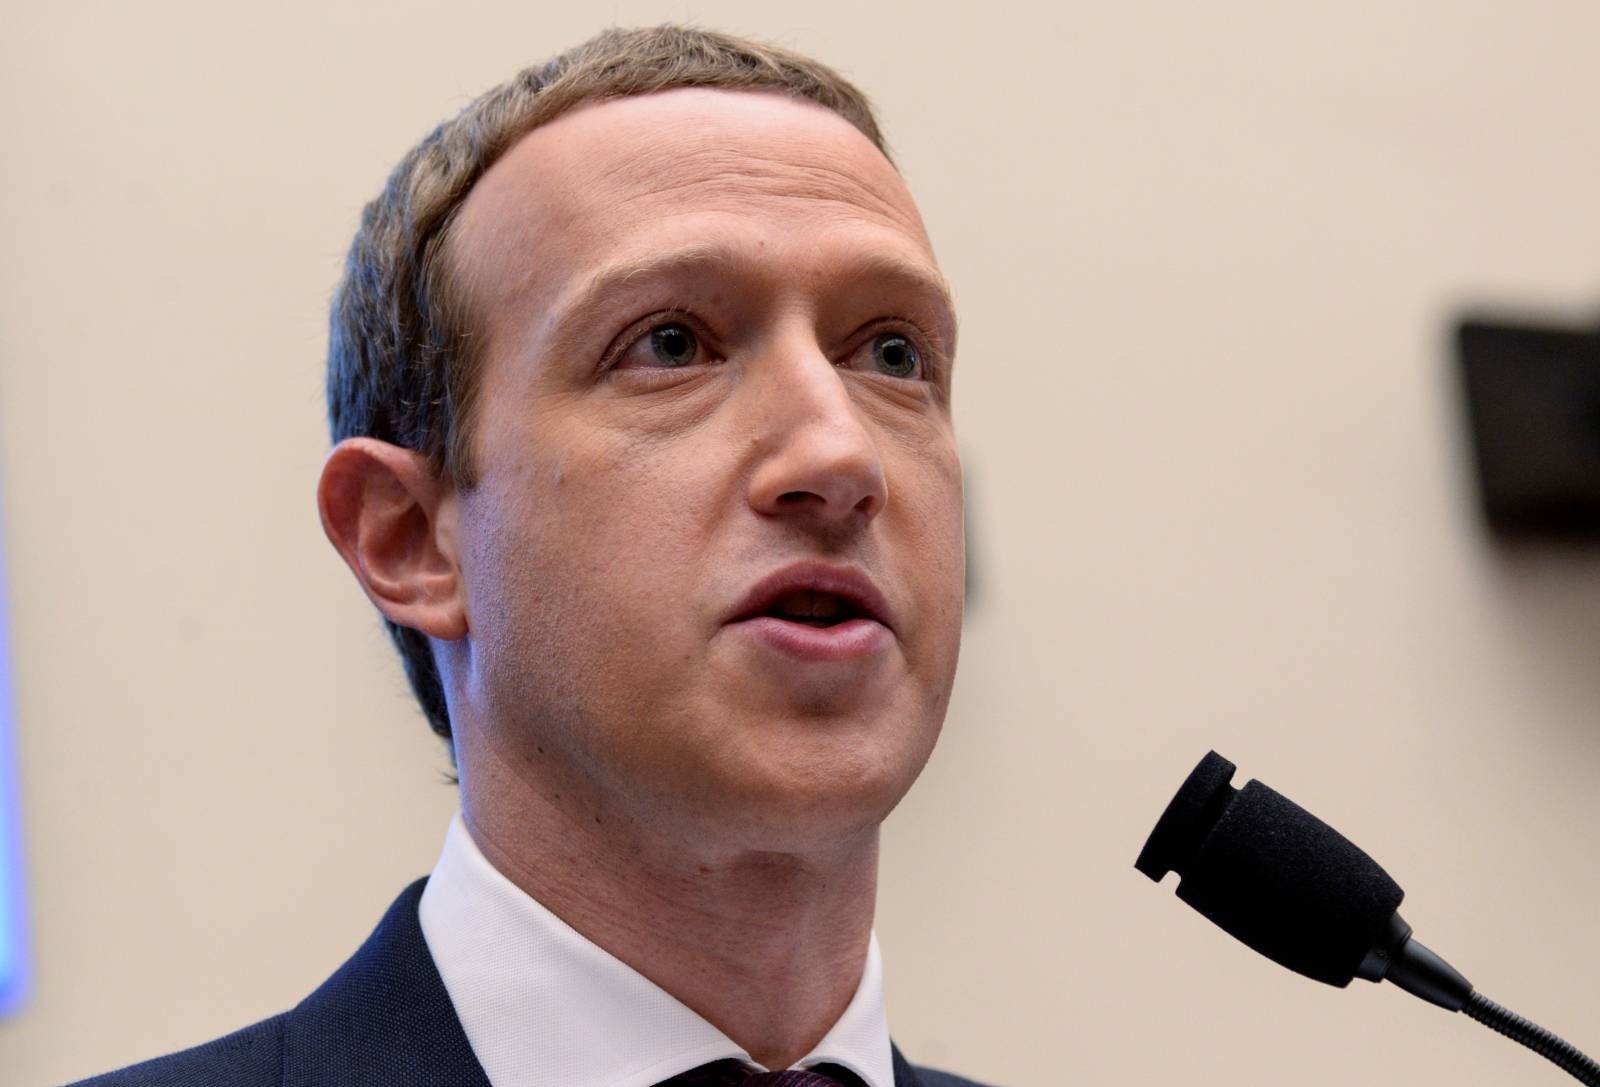 Facebook CEO Zuckerberg testifies about cryptocurrency Libra at House Financial Services Committee hearing on Capitol Hill in Washington